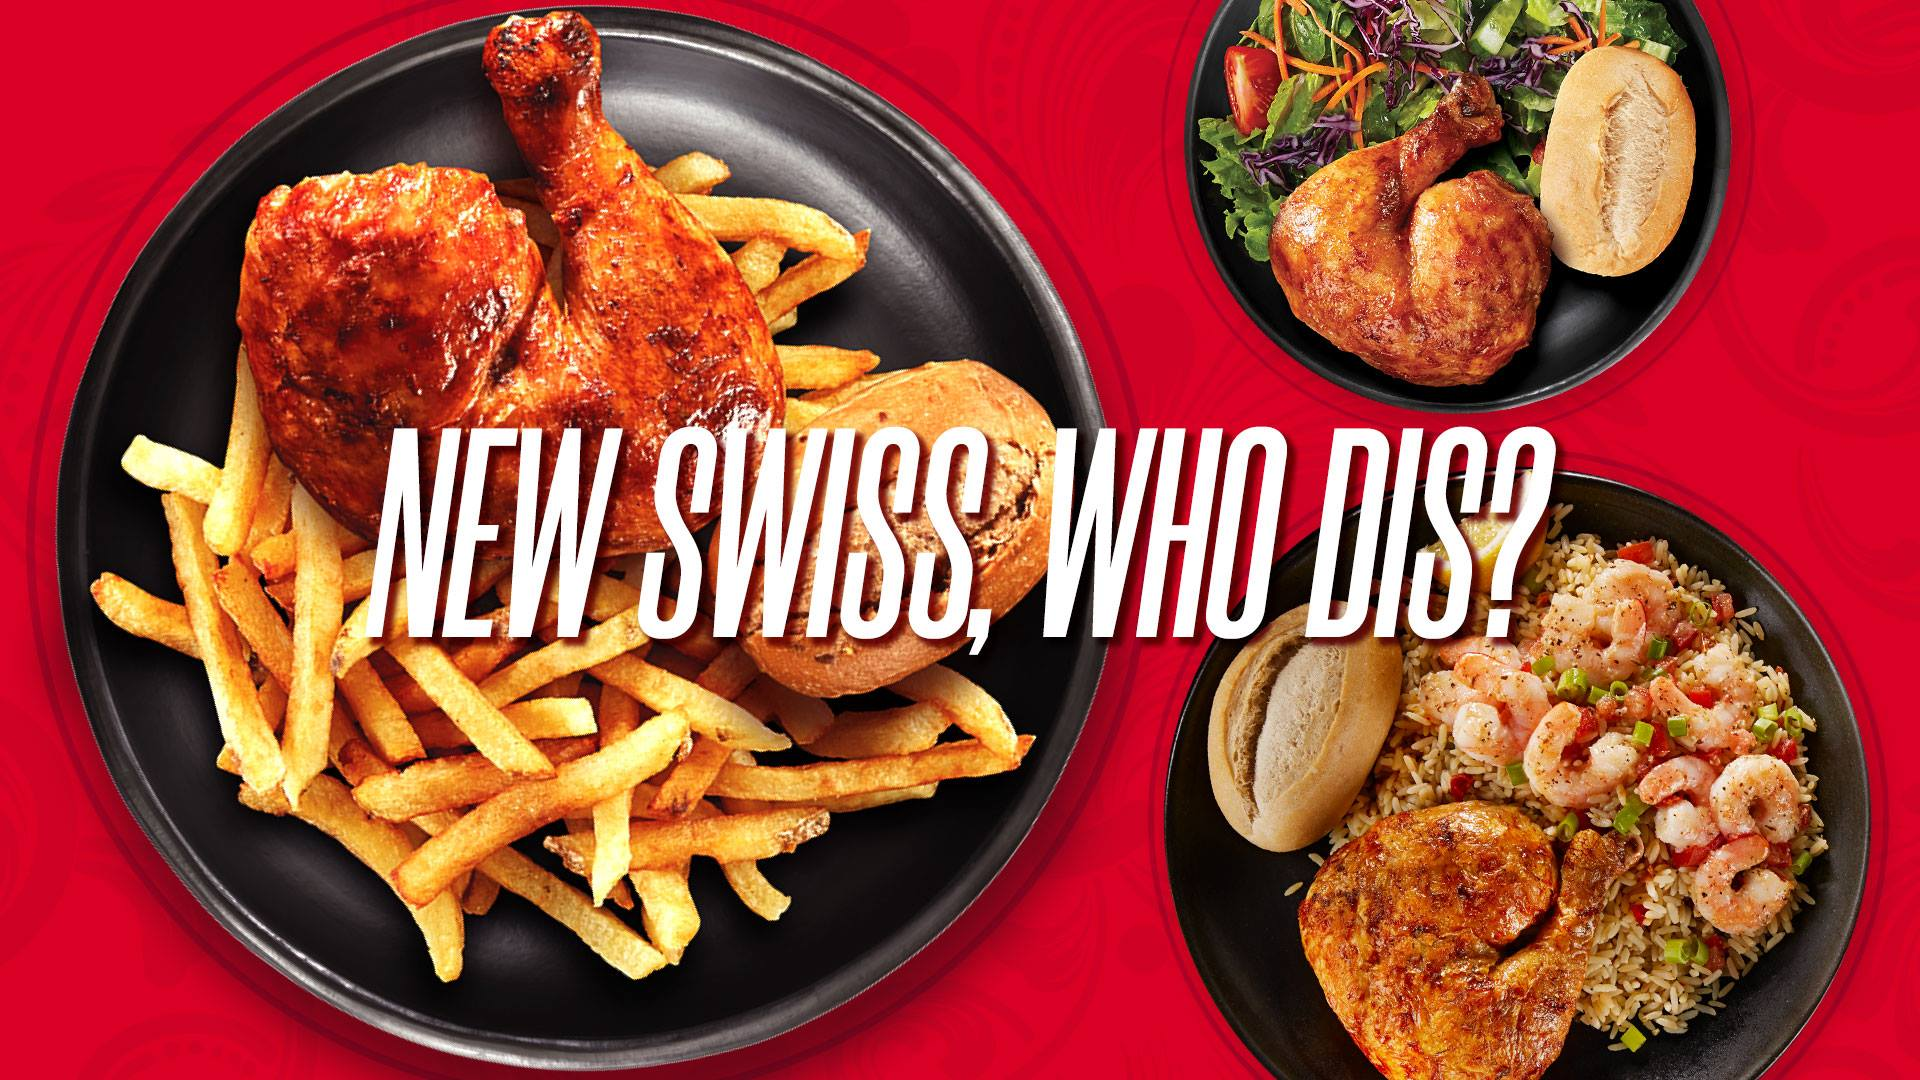 Swiss Chalet Canada Promotion: Save $5 Off Using App + NEW